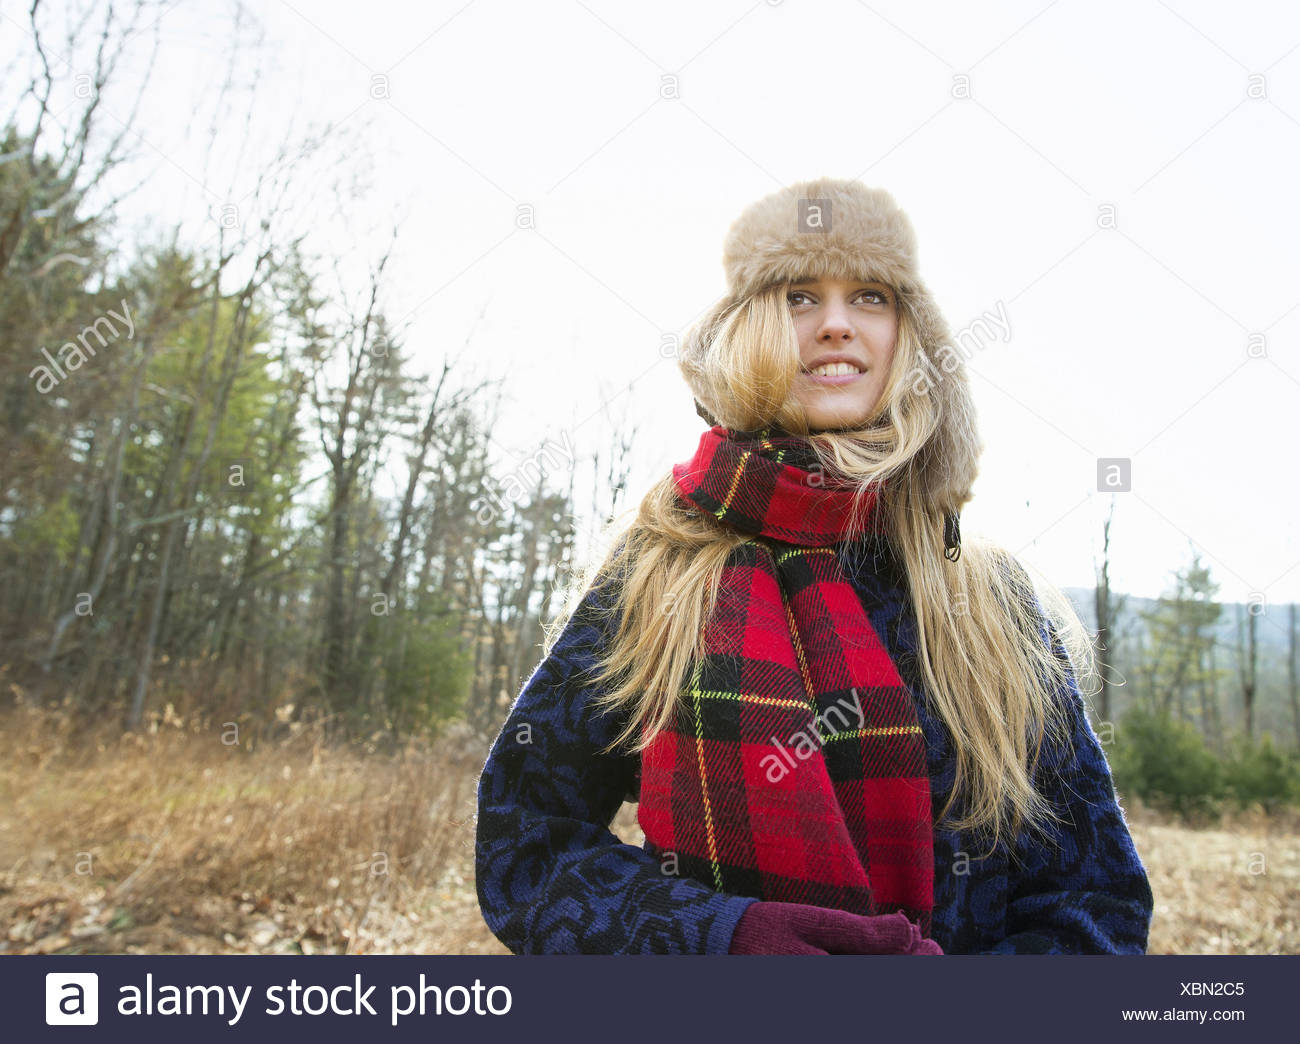 A woman in a warm furry hat and a big red tartan scarf outdoors in the winter - Stock Image